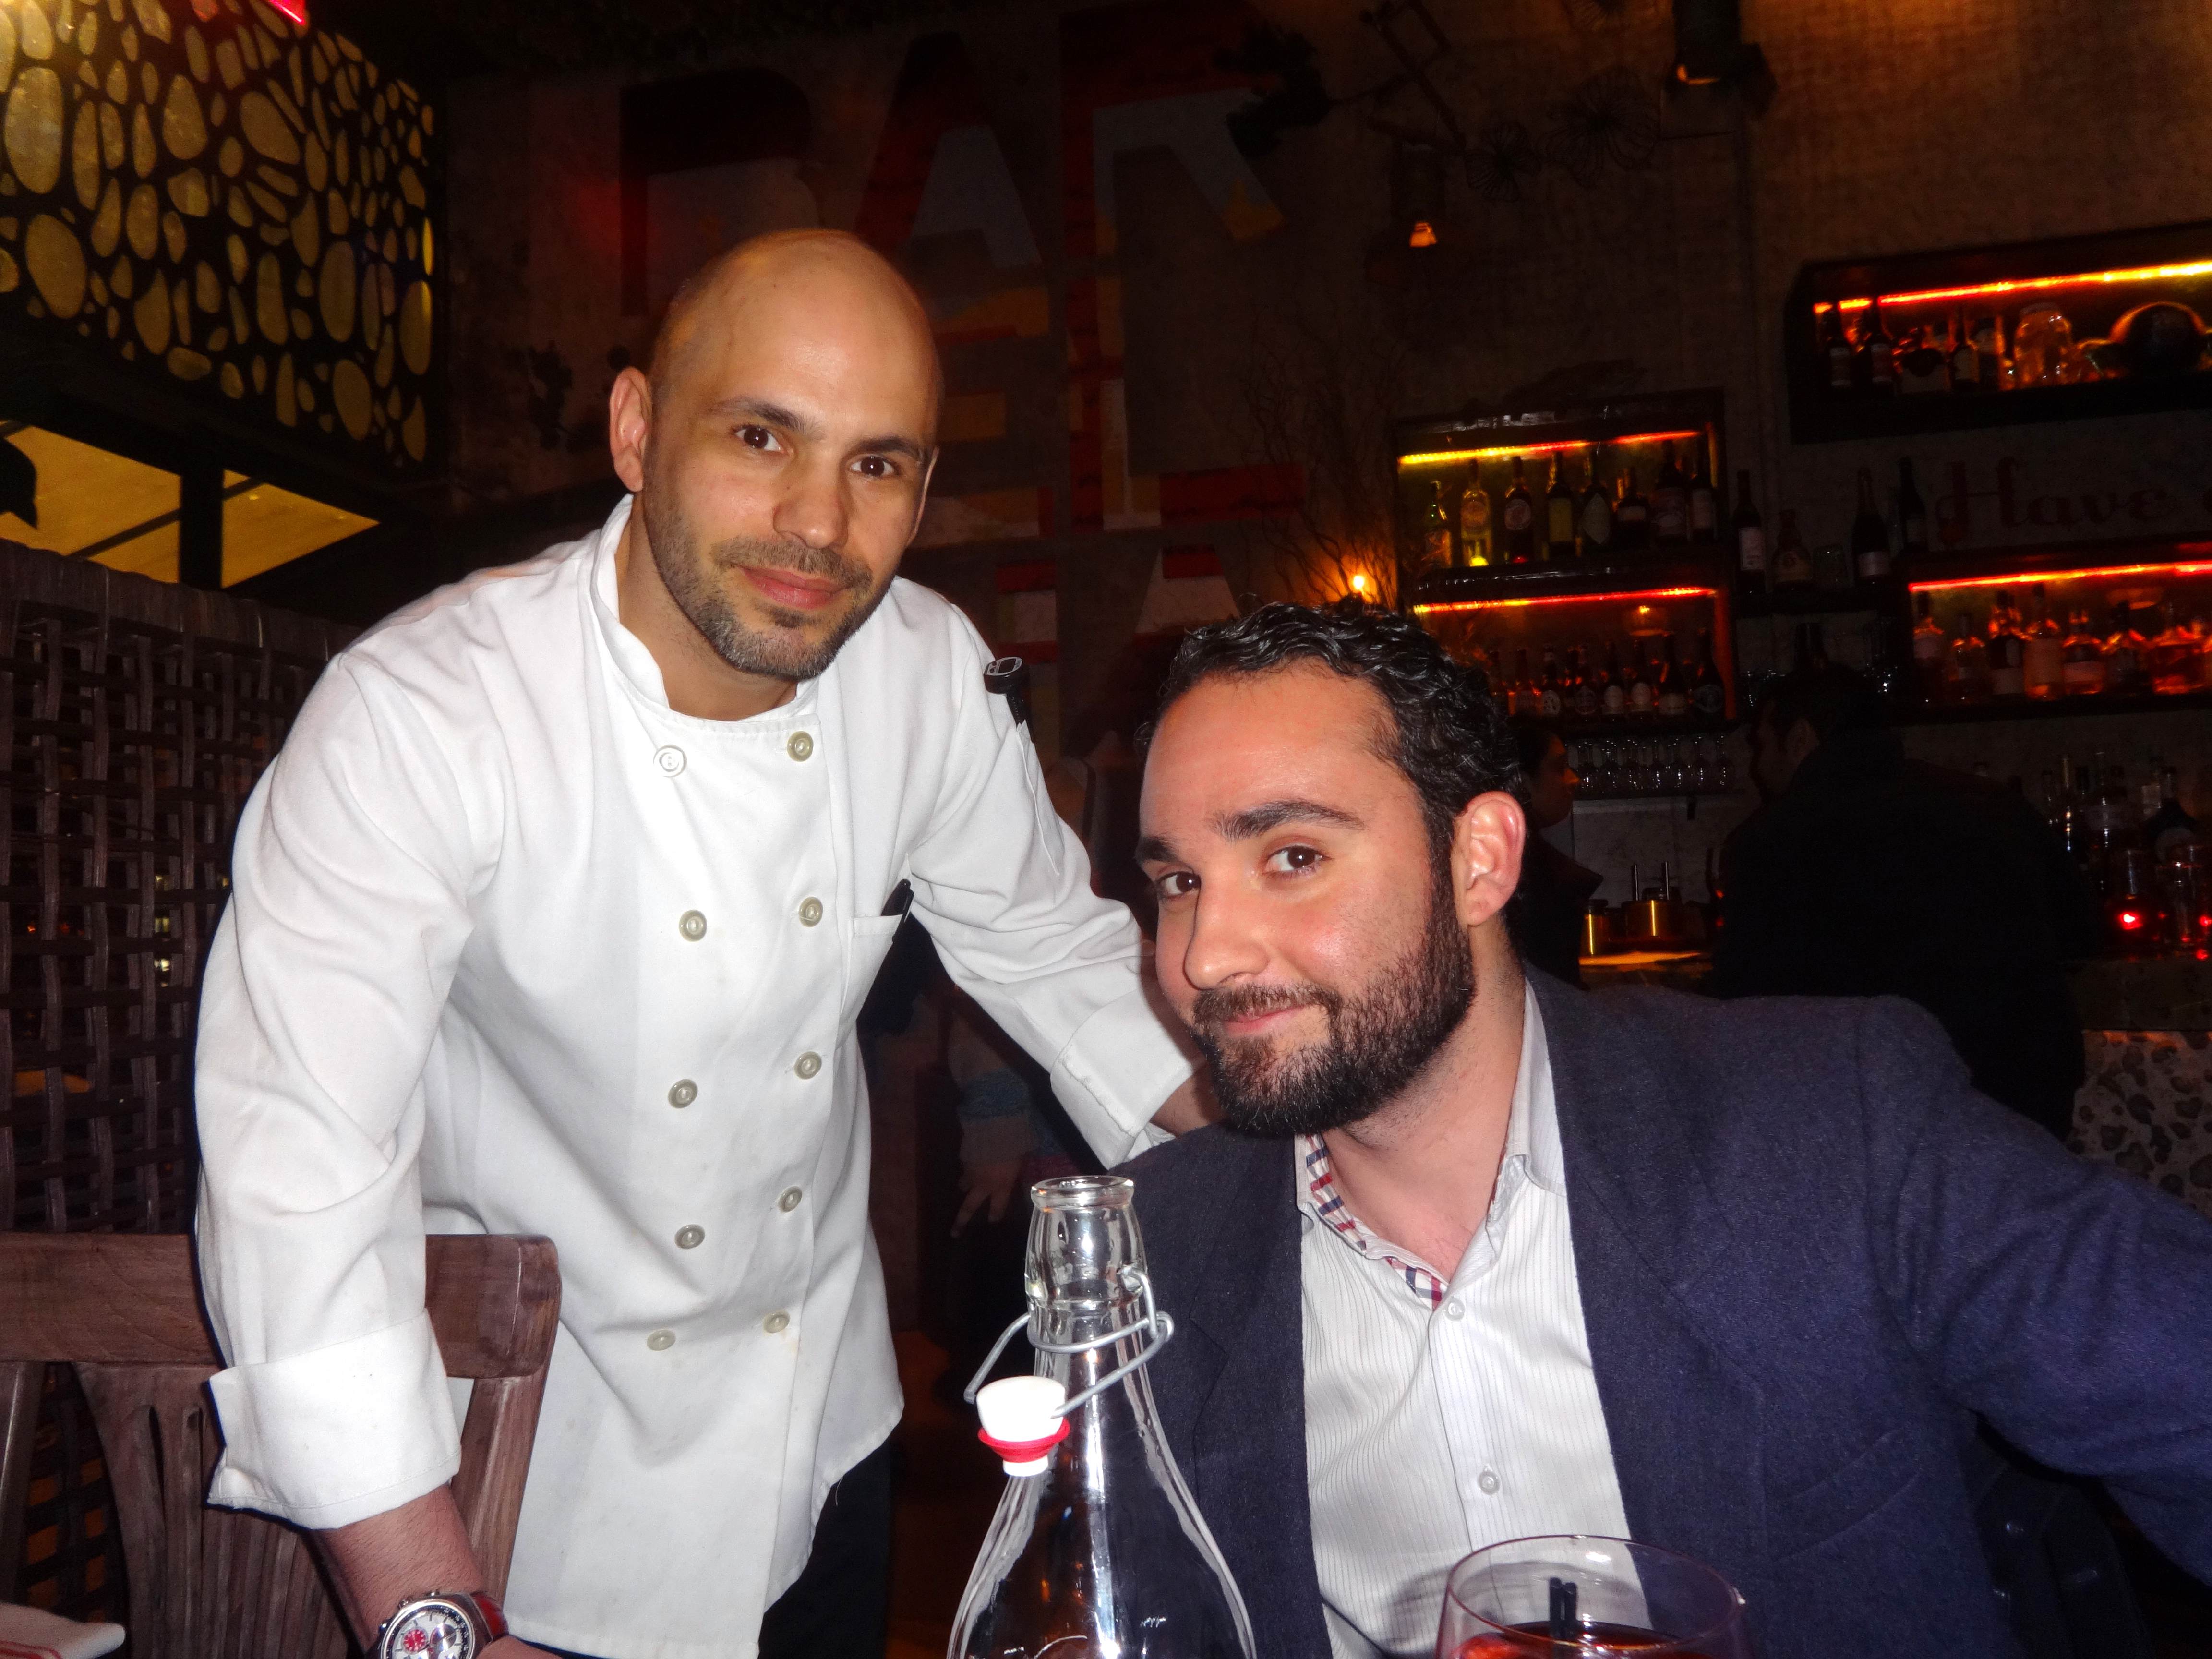 Plan B chef and manager